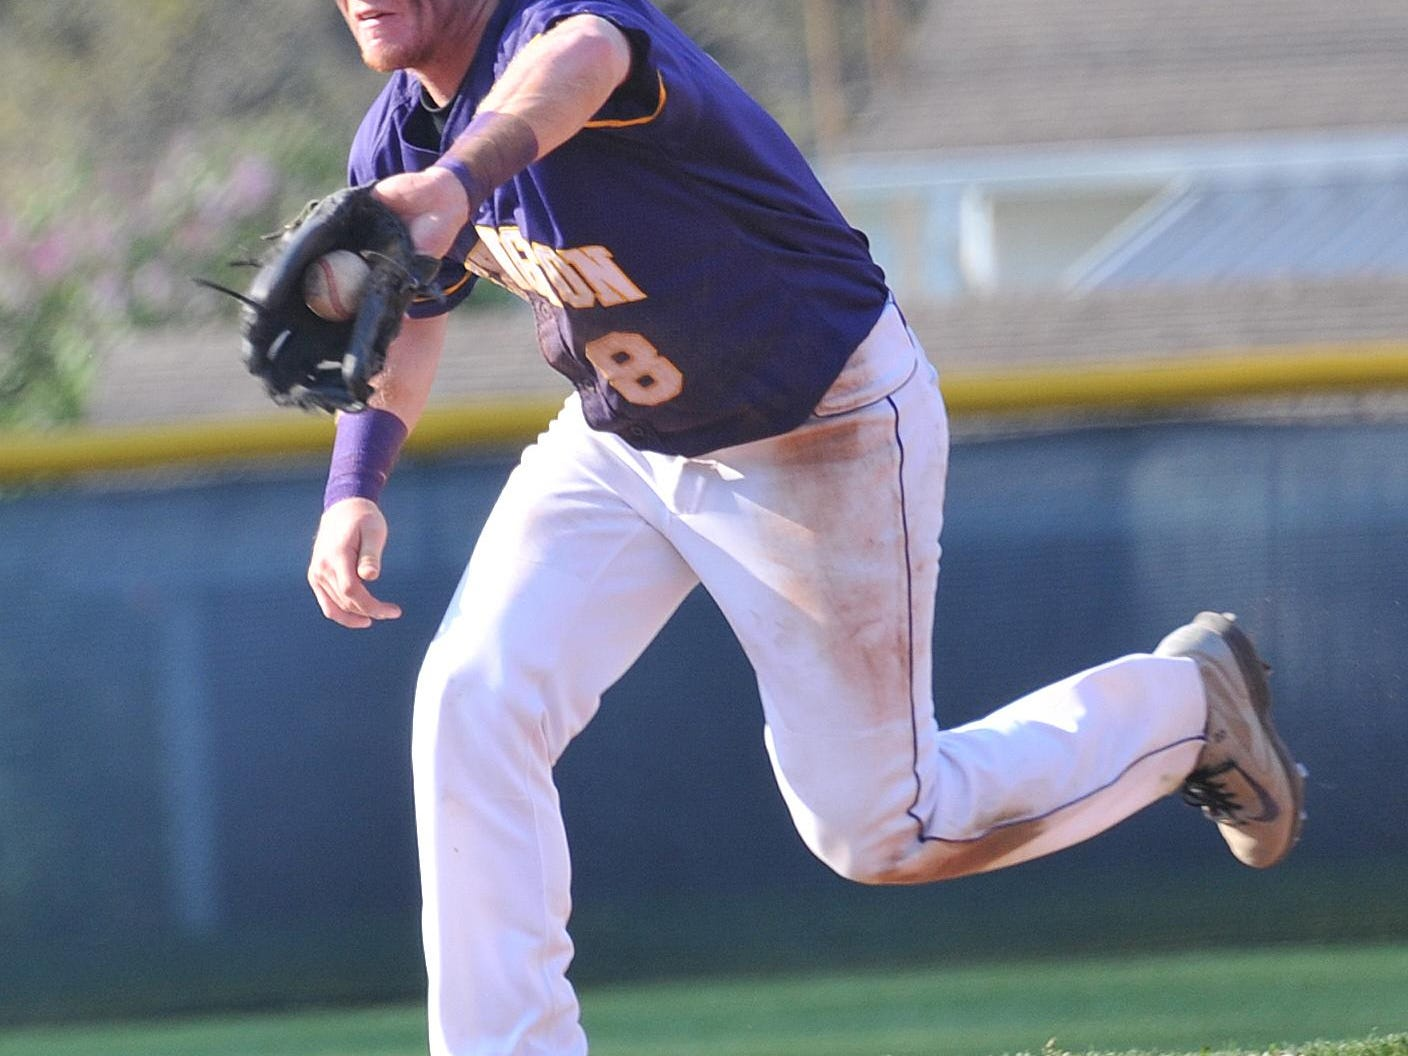 Lexington's Evan Lee fields a ground ball in an Ohio Cardinal Conference win at Madison. A shortstop and a pitcher, Lee repeated at News Journal Baseball Player of the Year.